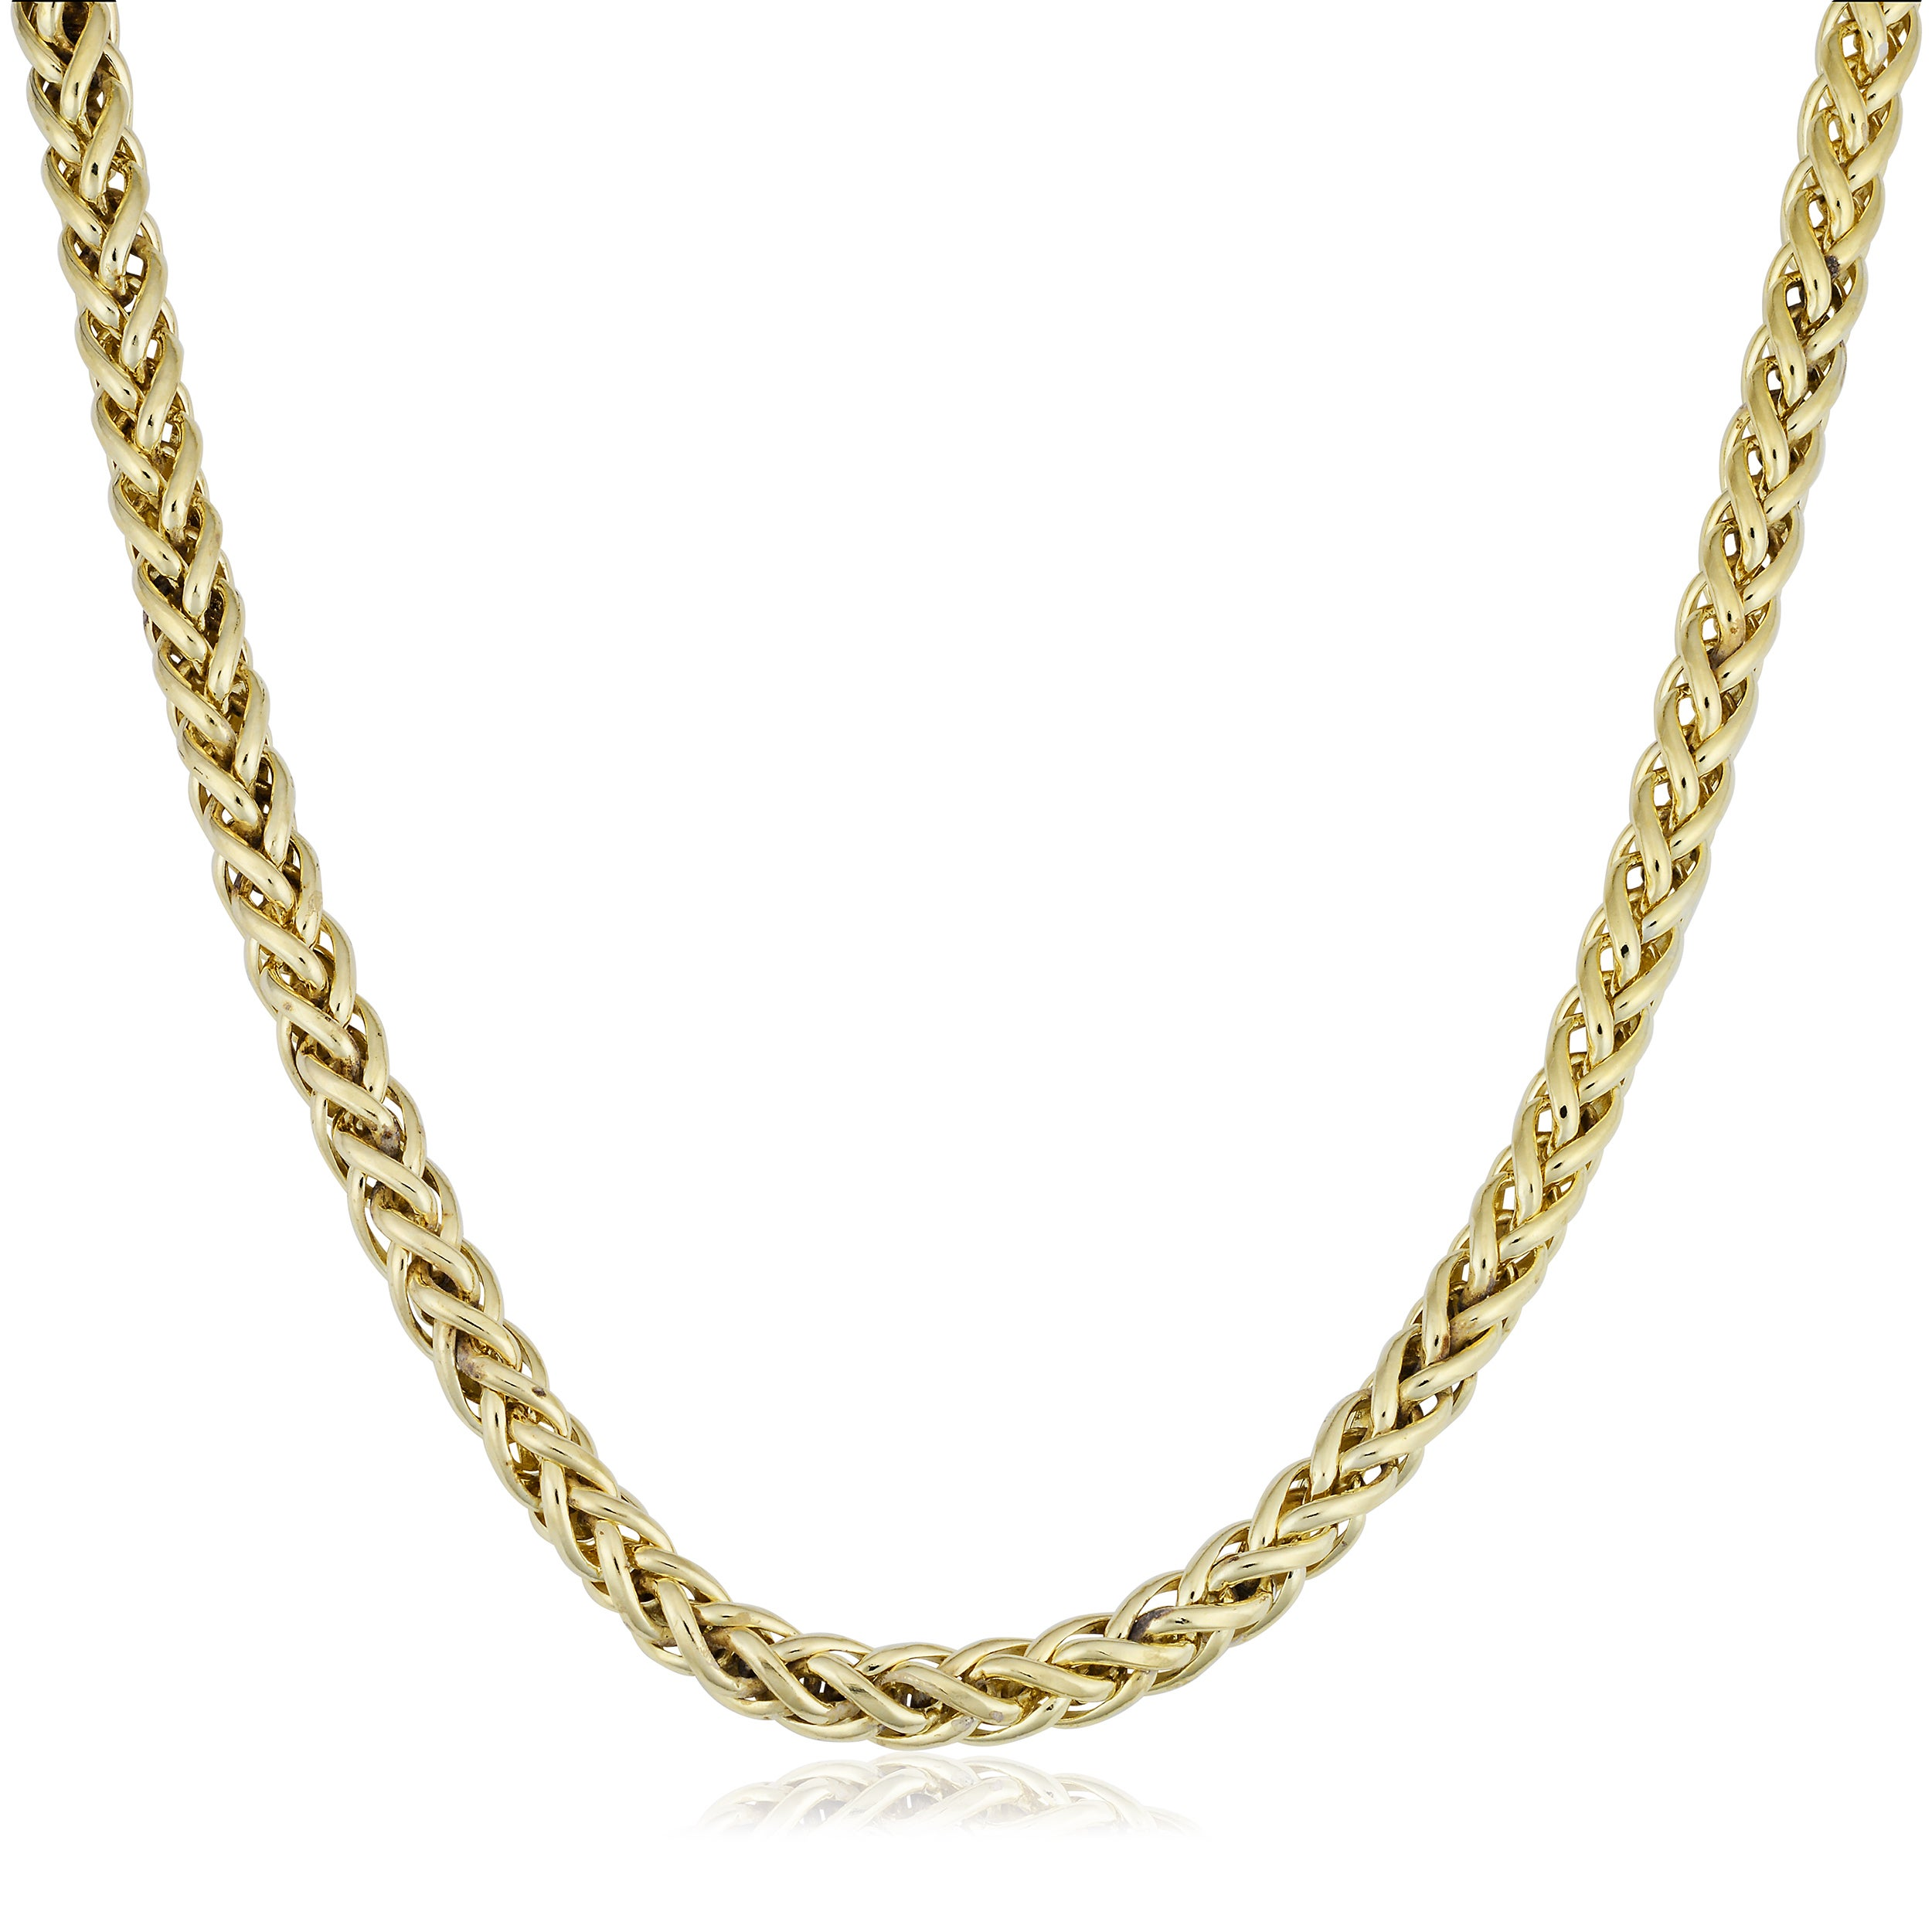 Shop Fremada 14k Yellow Gold Filled Bold 6mm Franco Link Chain